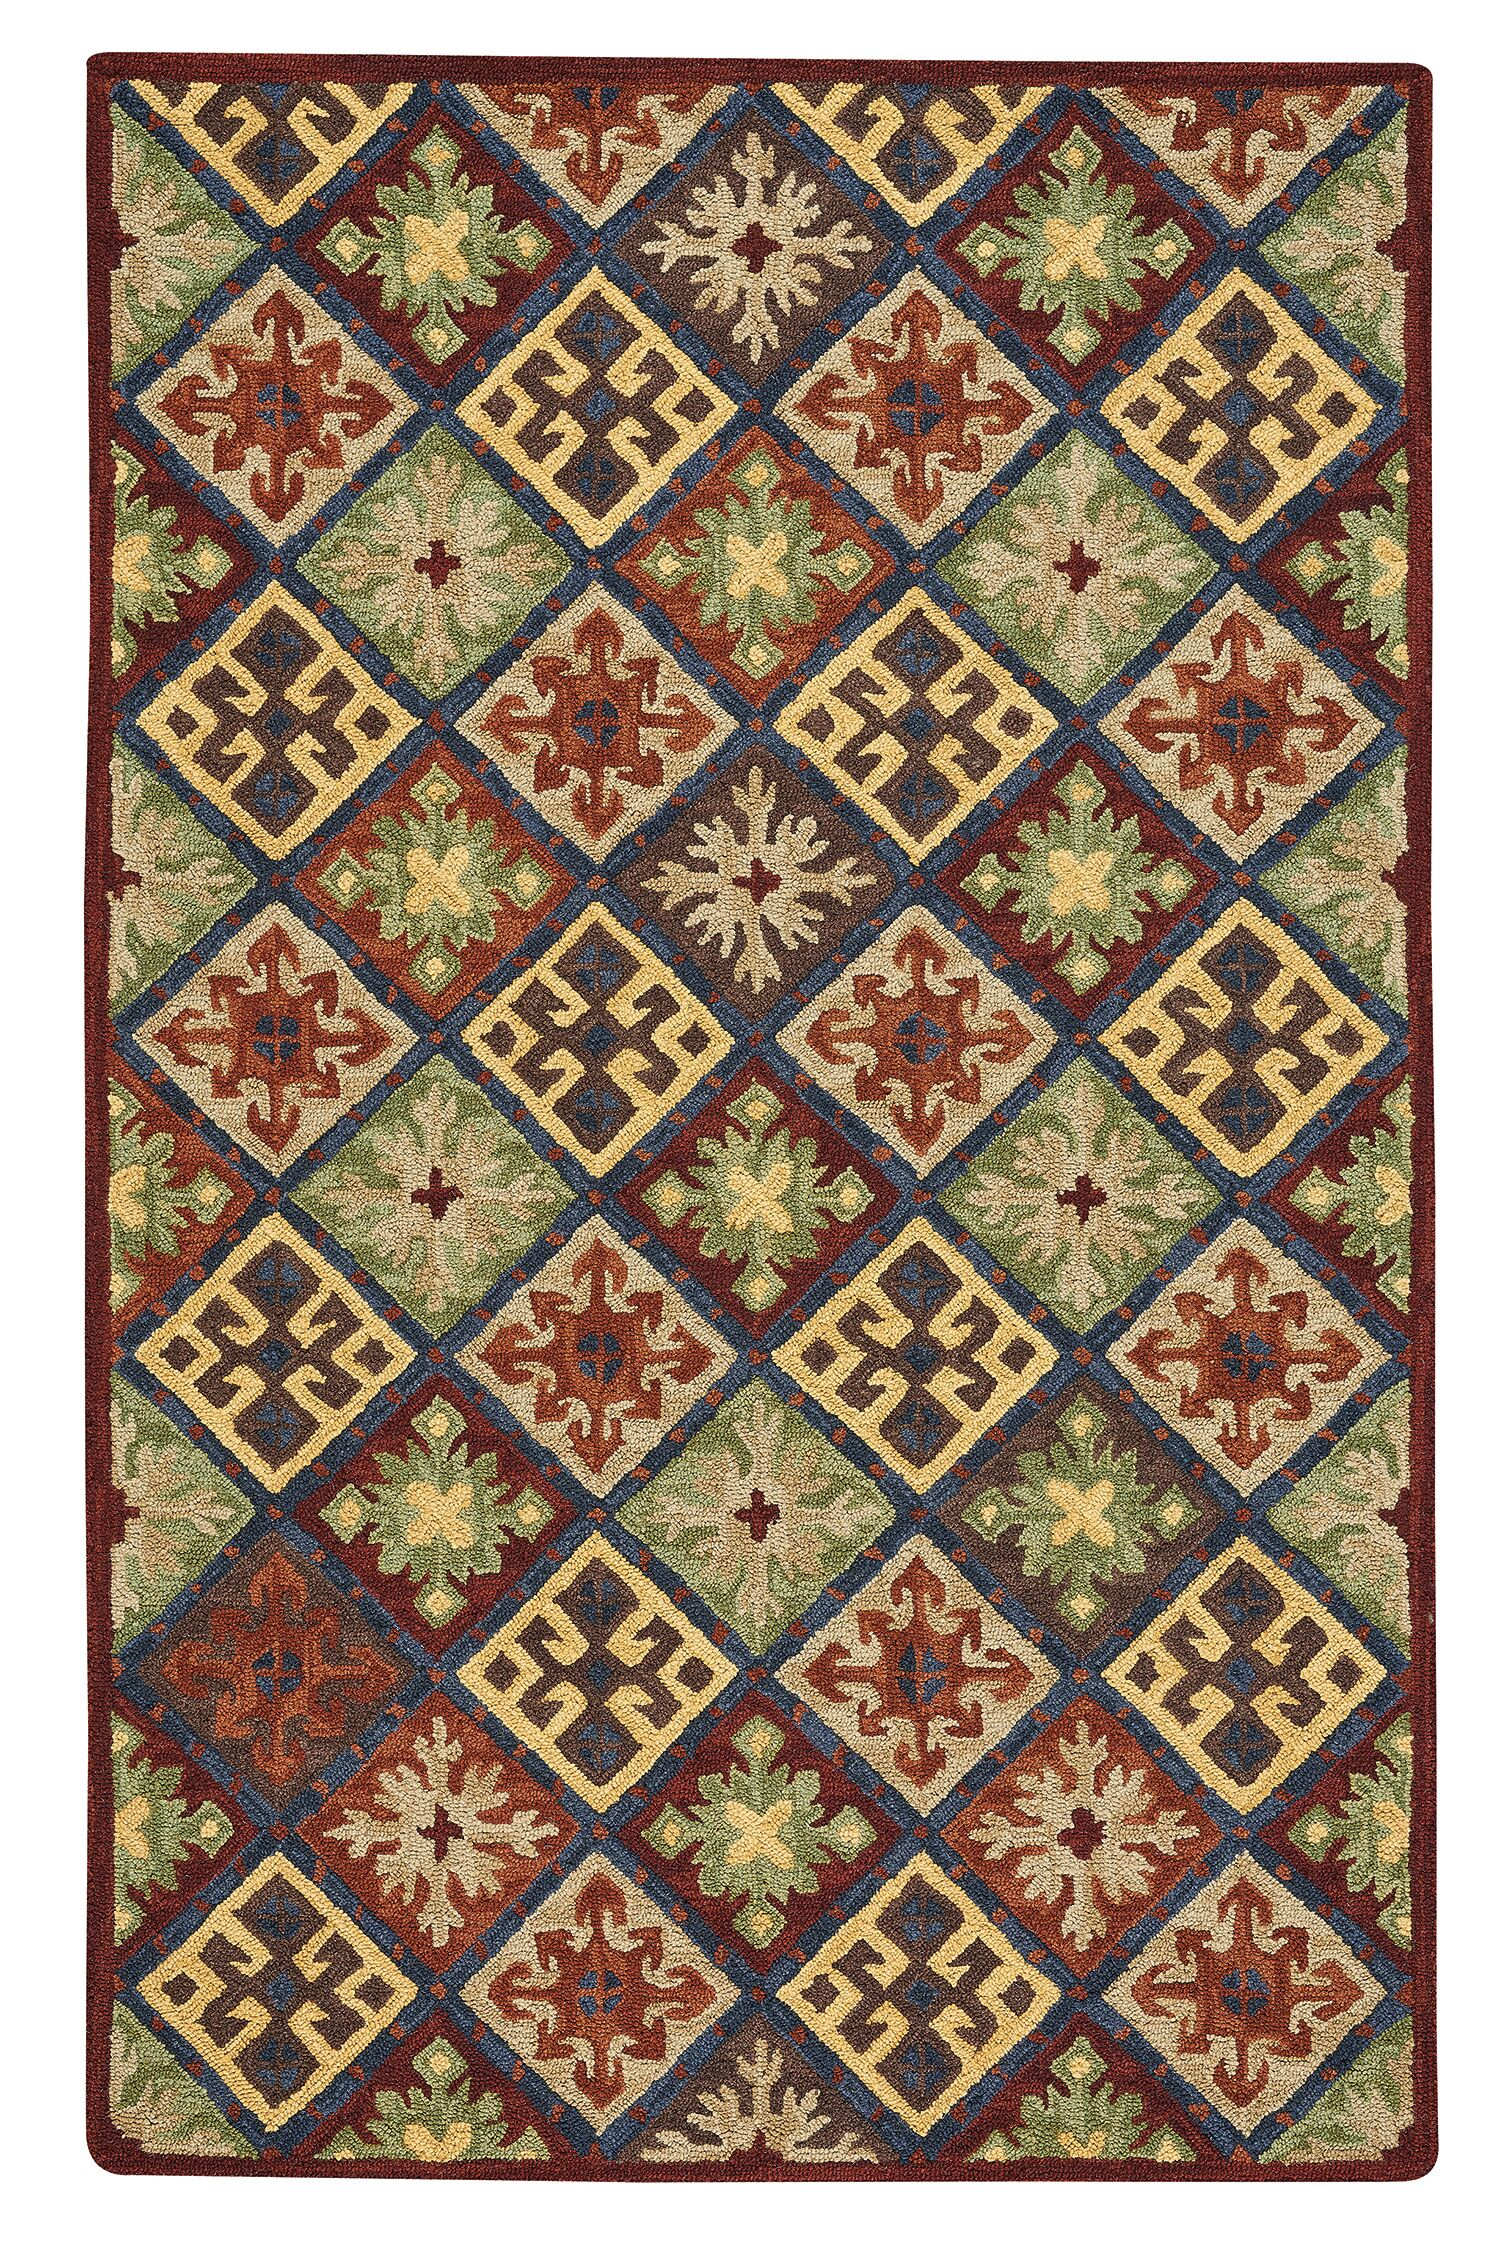 Oribe Quilt Hand-Tufted Wool Green/Brown/Red Area Rug Rug Size: 3'6